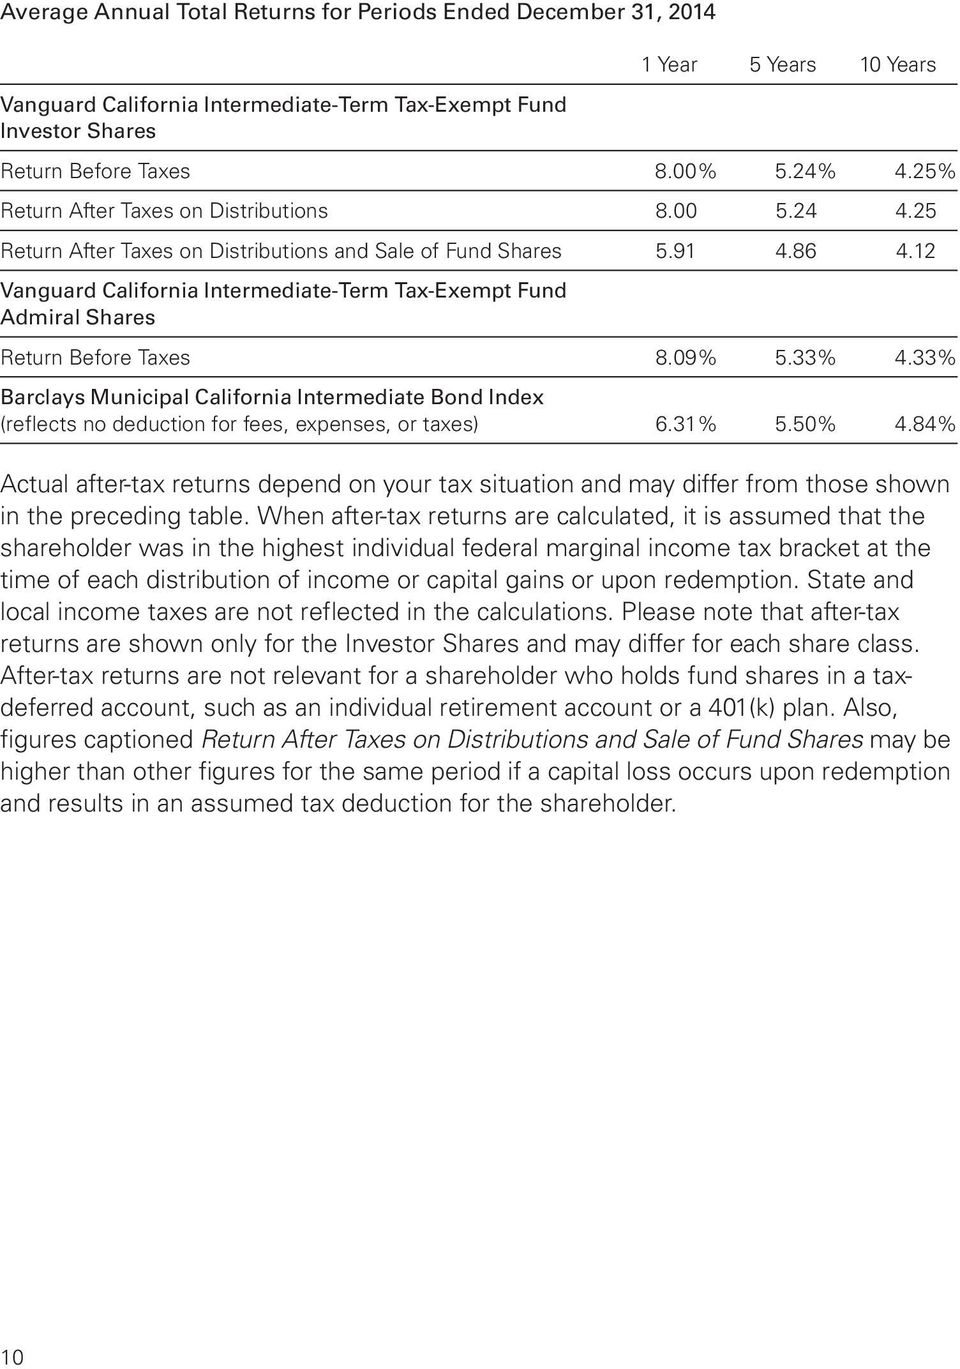 12 Vanguard California Intermediate-Term Tax-Exempt Fund Admiral Shares Return Before Taxes 8.09% 5.33% 4.